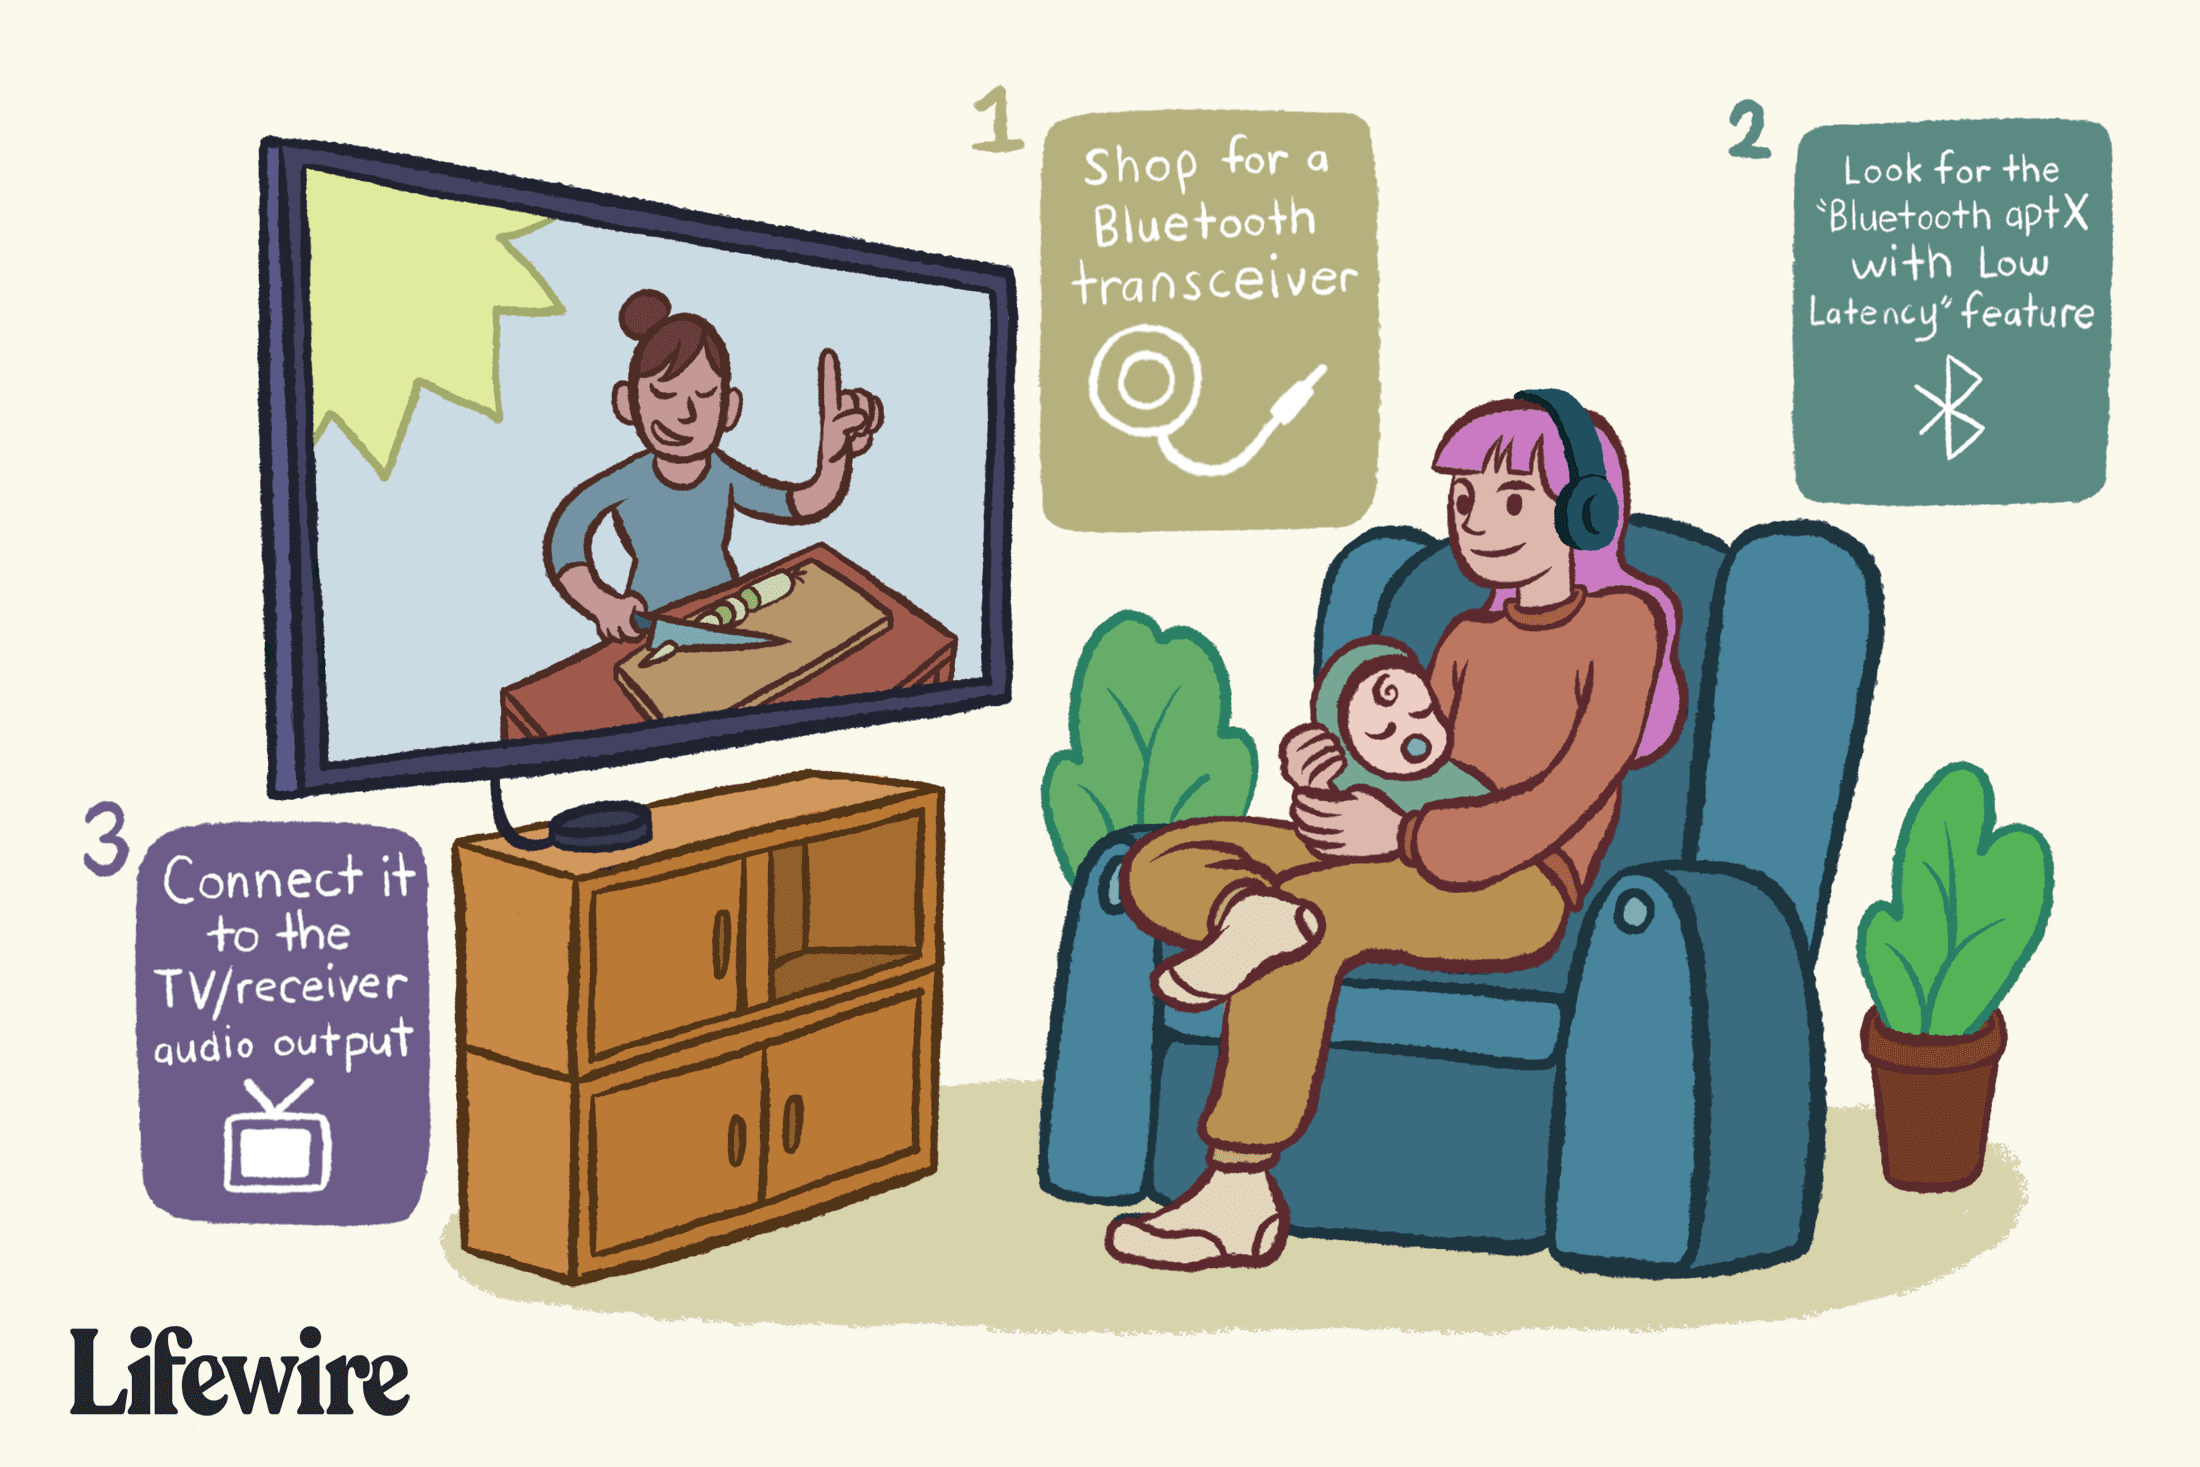 Woman holding a baby while wearing Bluetooth headphones to watch TV